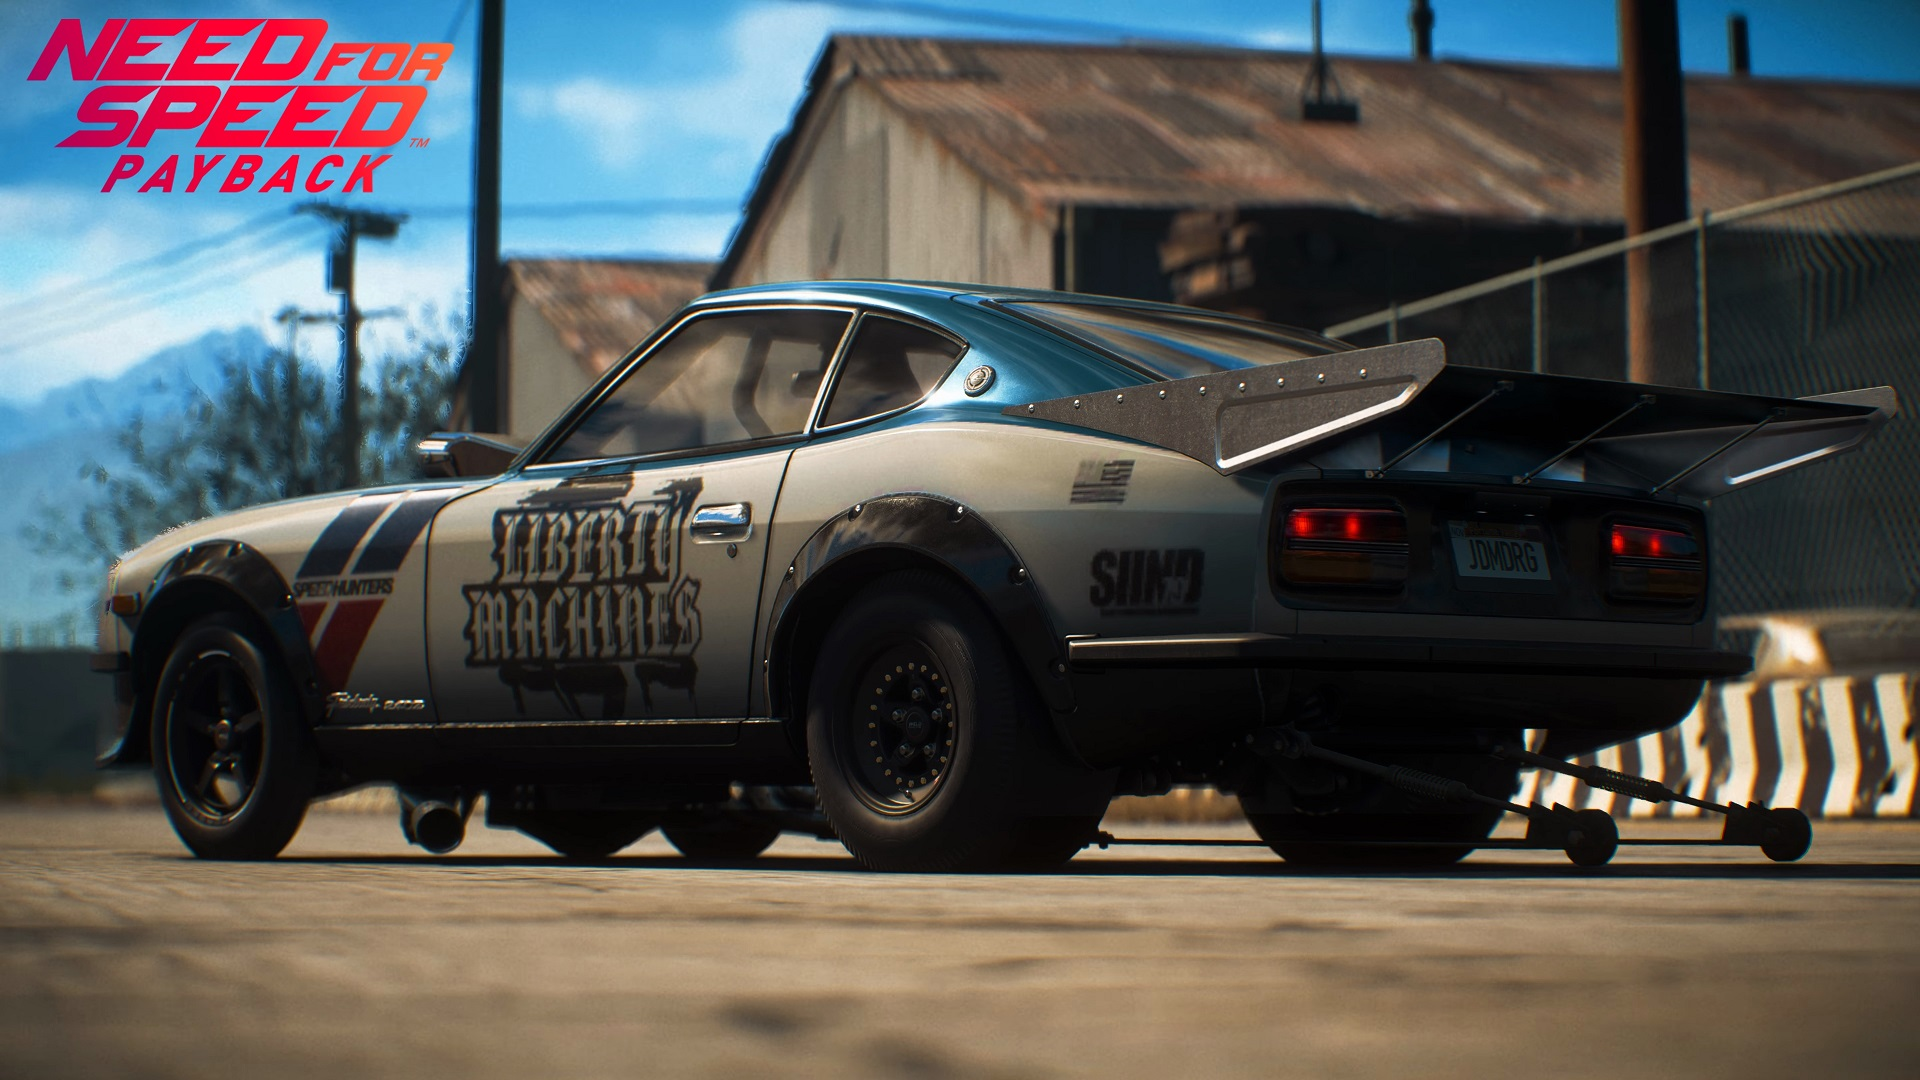 Need For Speed Payback Wallpaper: Download Need For Speed (NFS) Payback Wallpapers